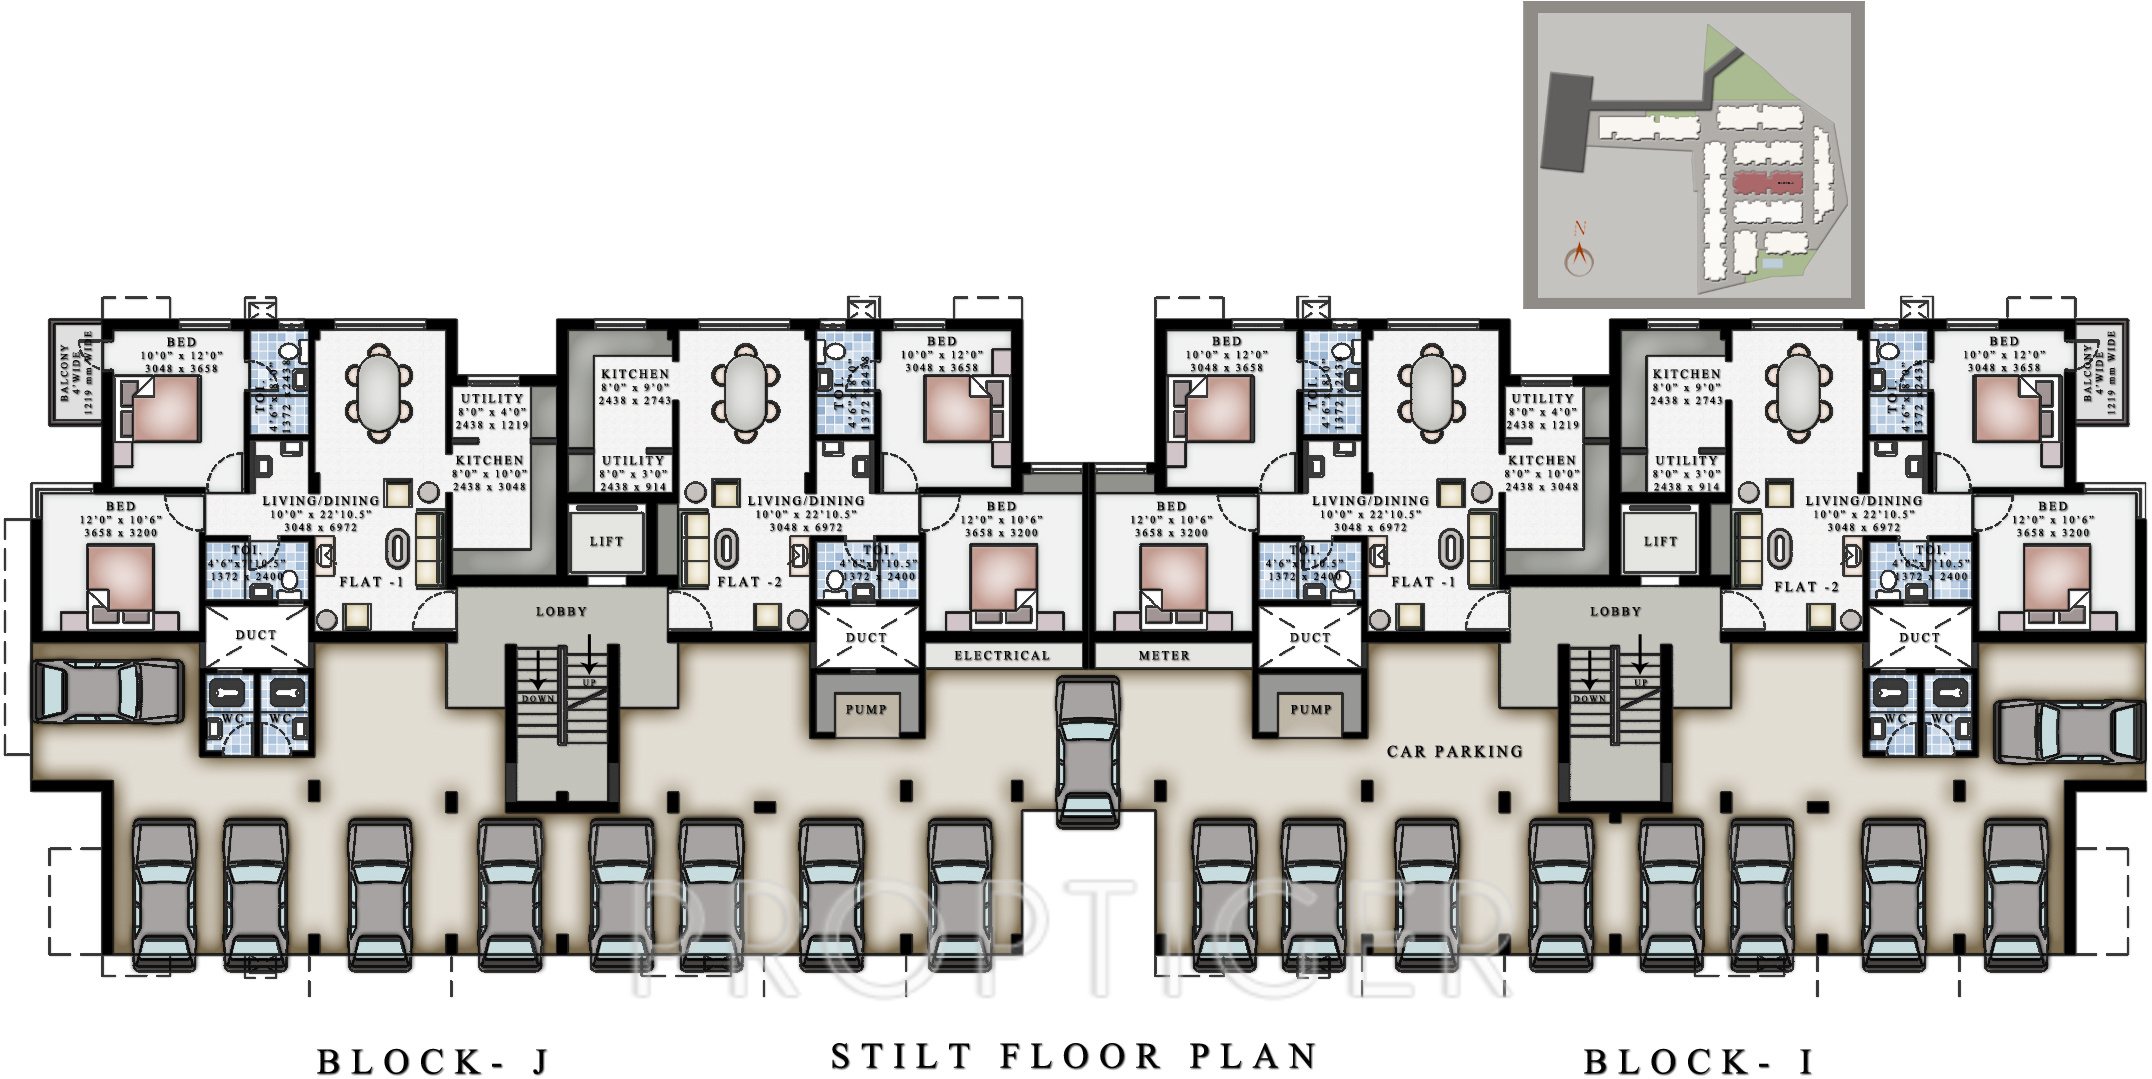 575 Sq Ft 2 BHK 2T Apartment For Sale In Ruby Builders